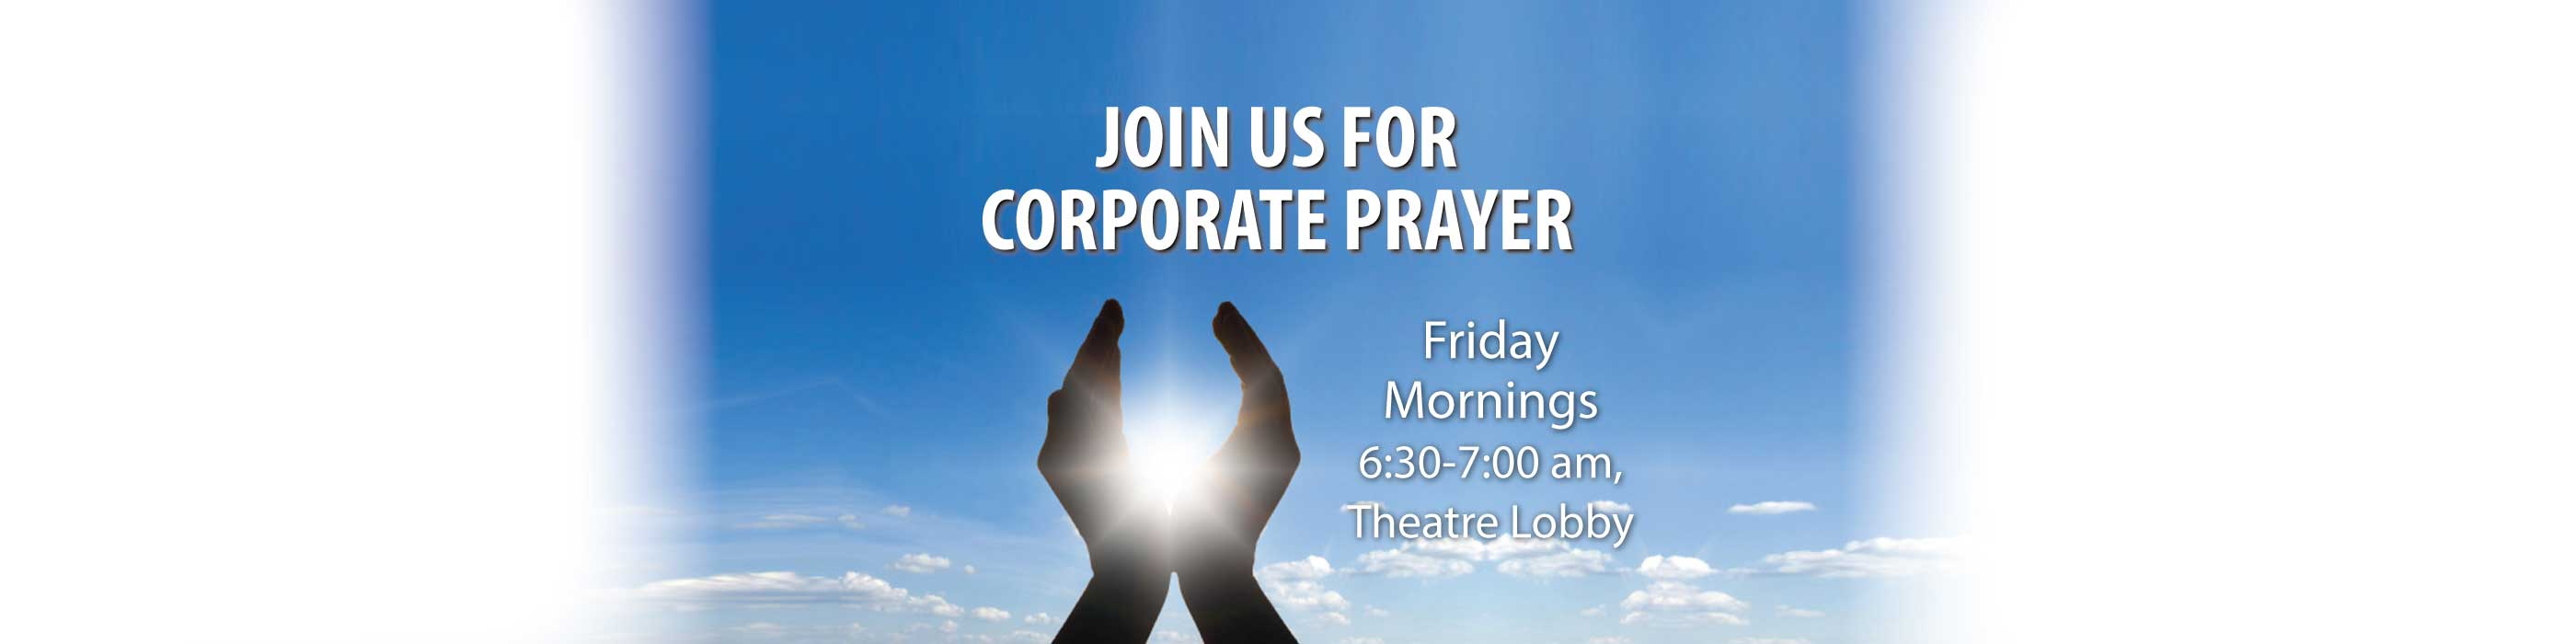 Summit-Corporate-Prayer-Web-Slider_rev-b_2800x700